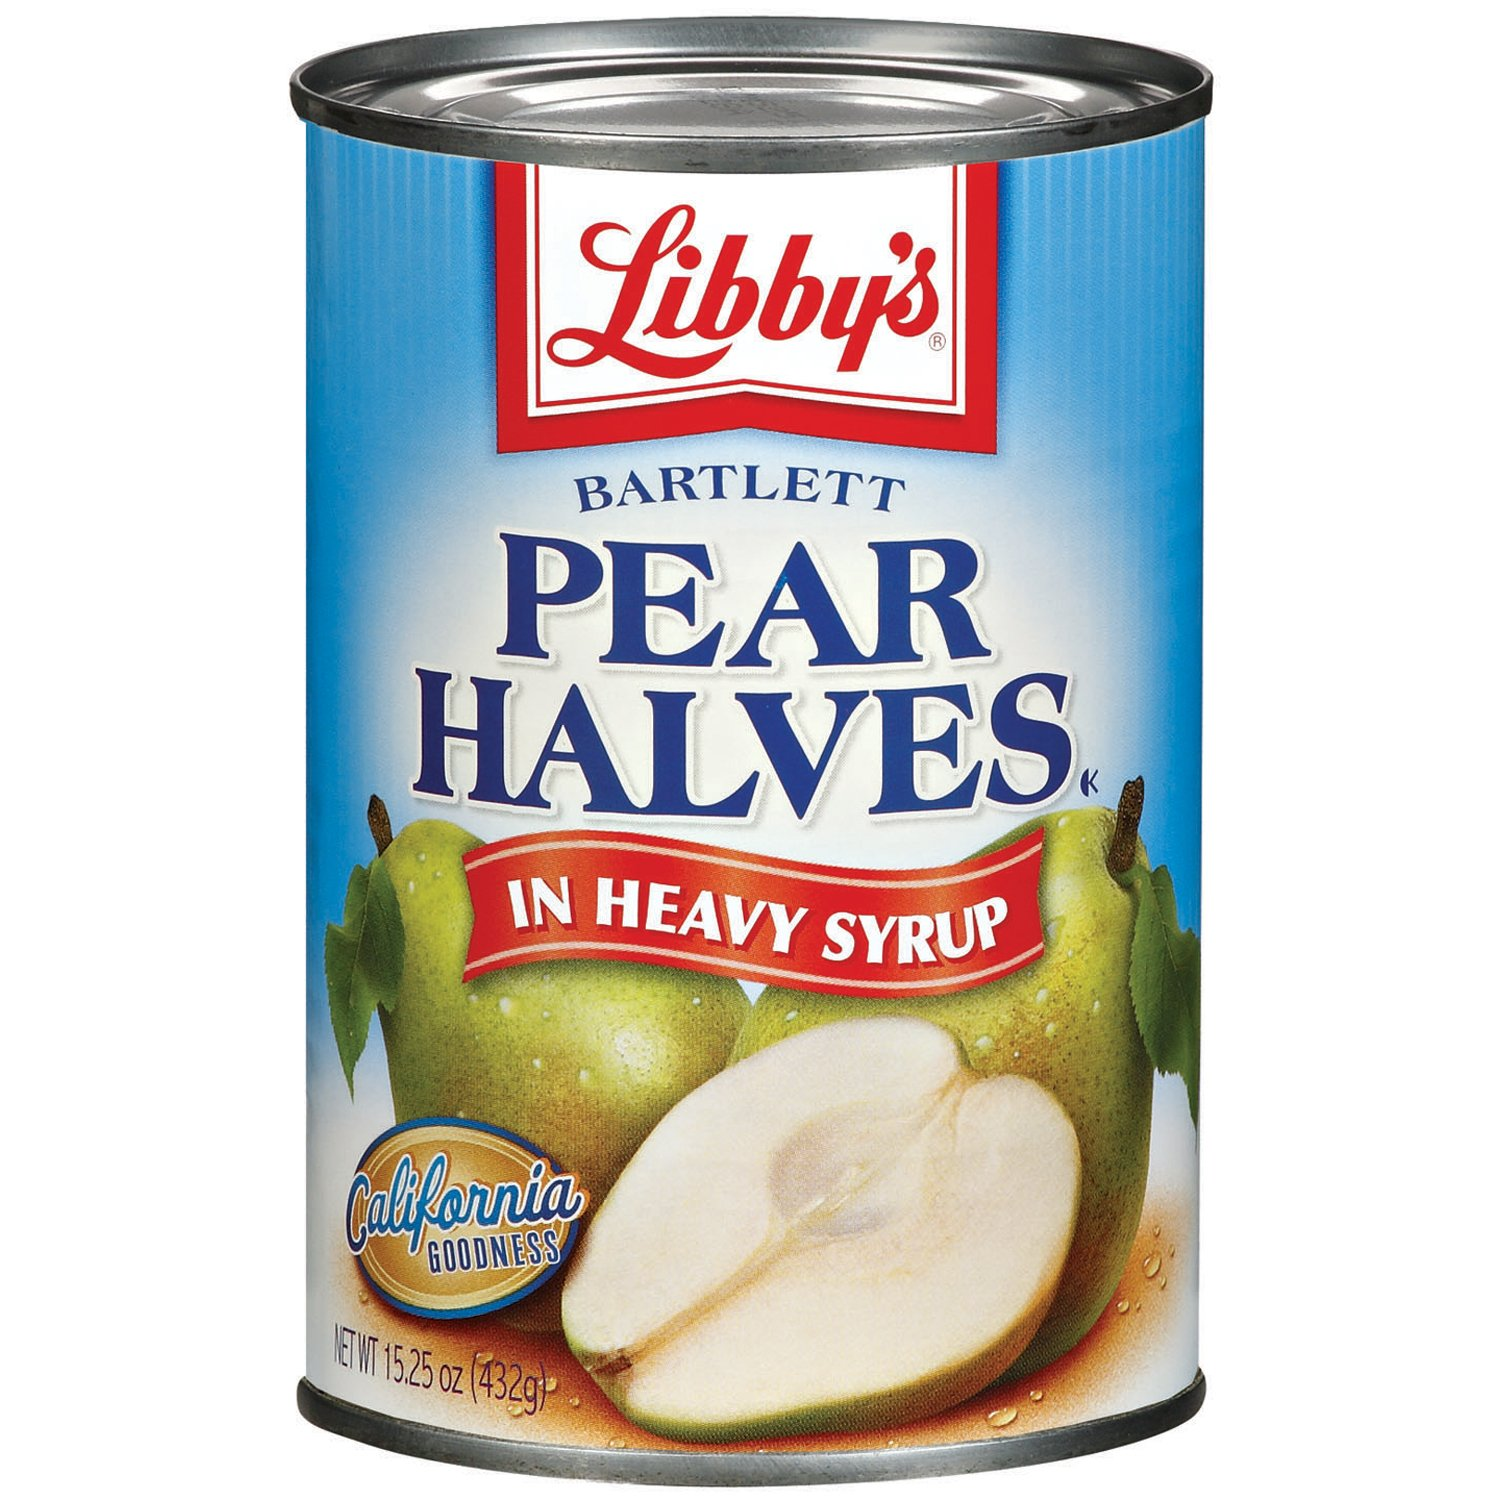 Libby's Pear Halves In Heavy Syrup, 14 Pound (Pack of 12)